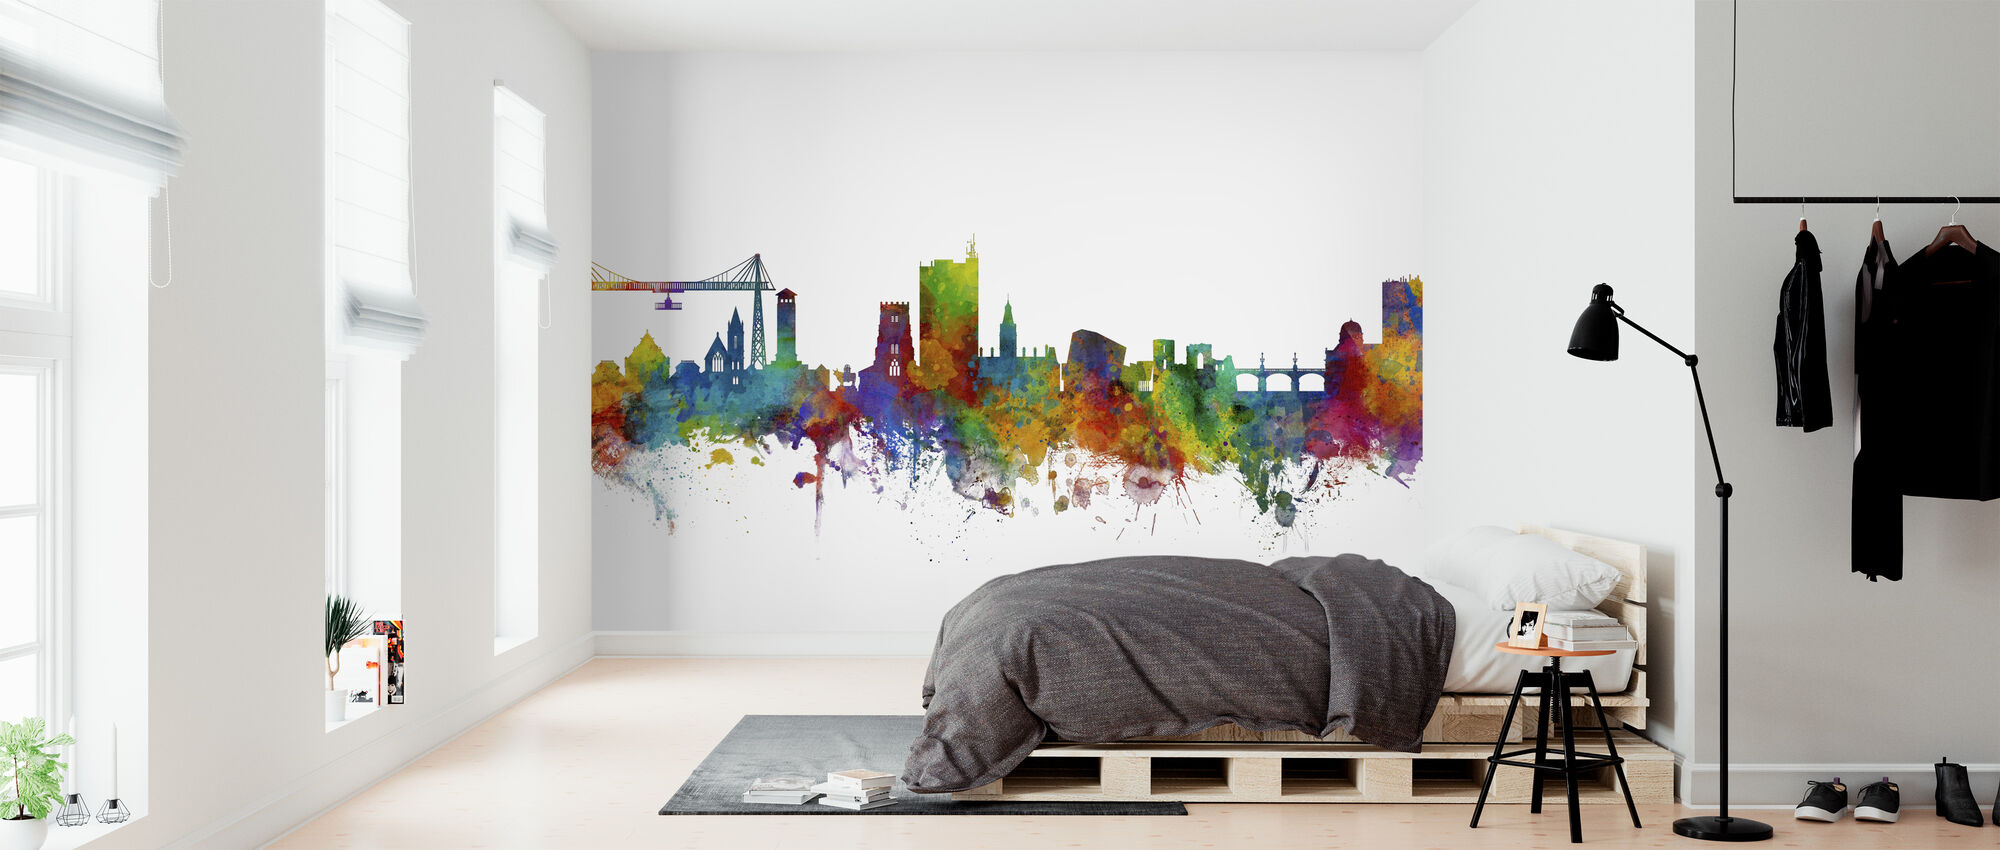 Newport Wales Skyline - Wallpaper - Bedroom